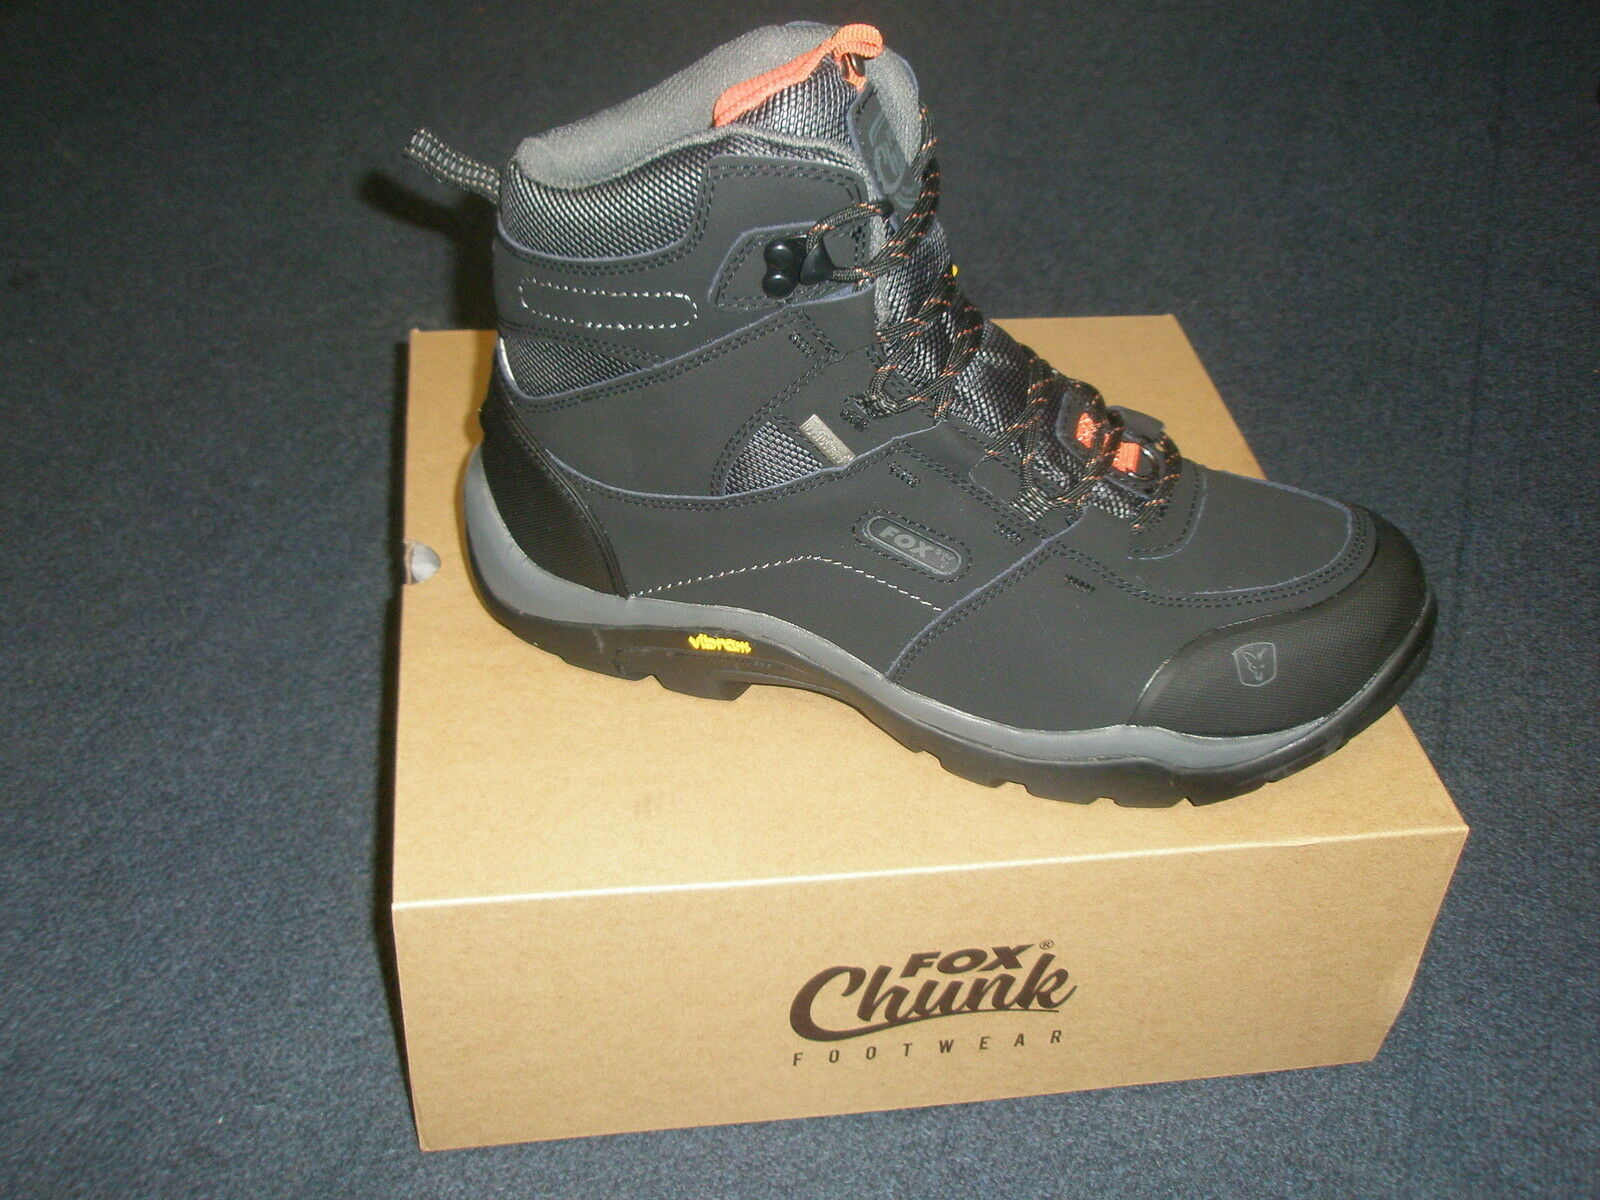 Fox Chunk Explorer High Stiefel with Vibram Sole ALL GrößeS Fishing